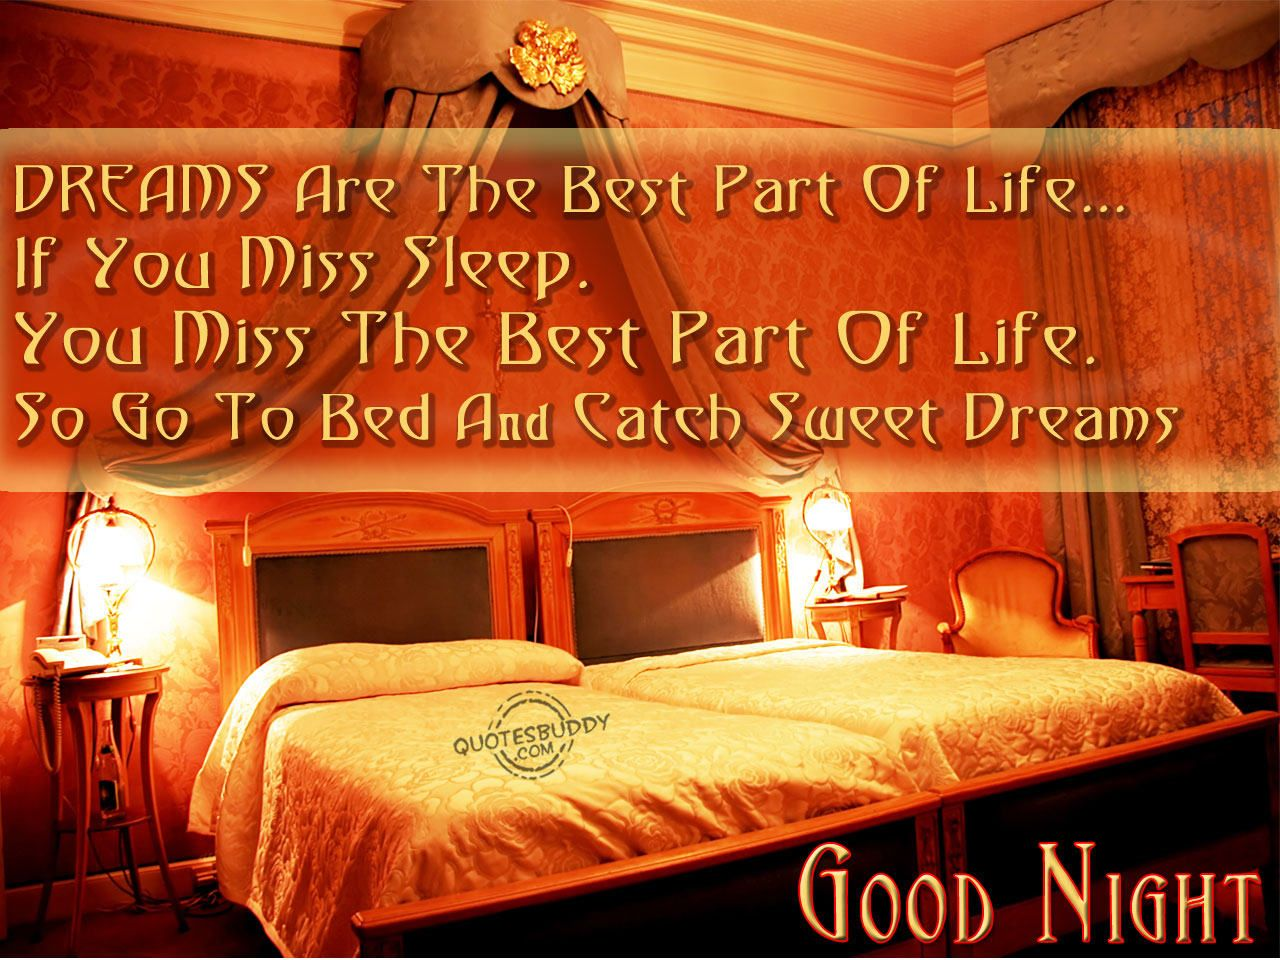 Good Night Good Night Quotes Good Night Wishes Sweet Dream Quotes